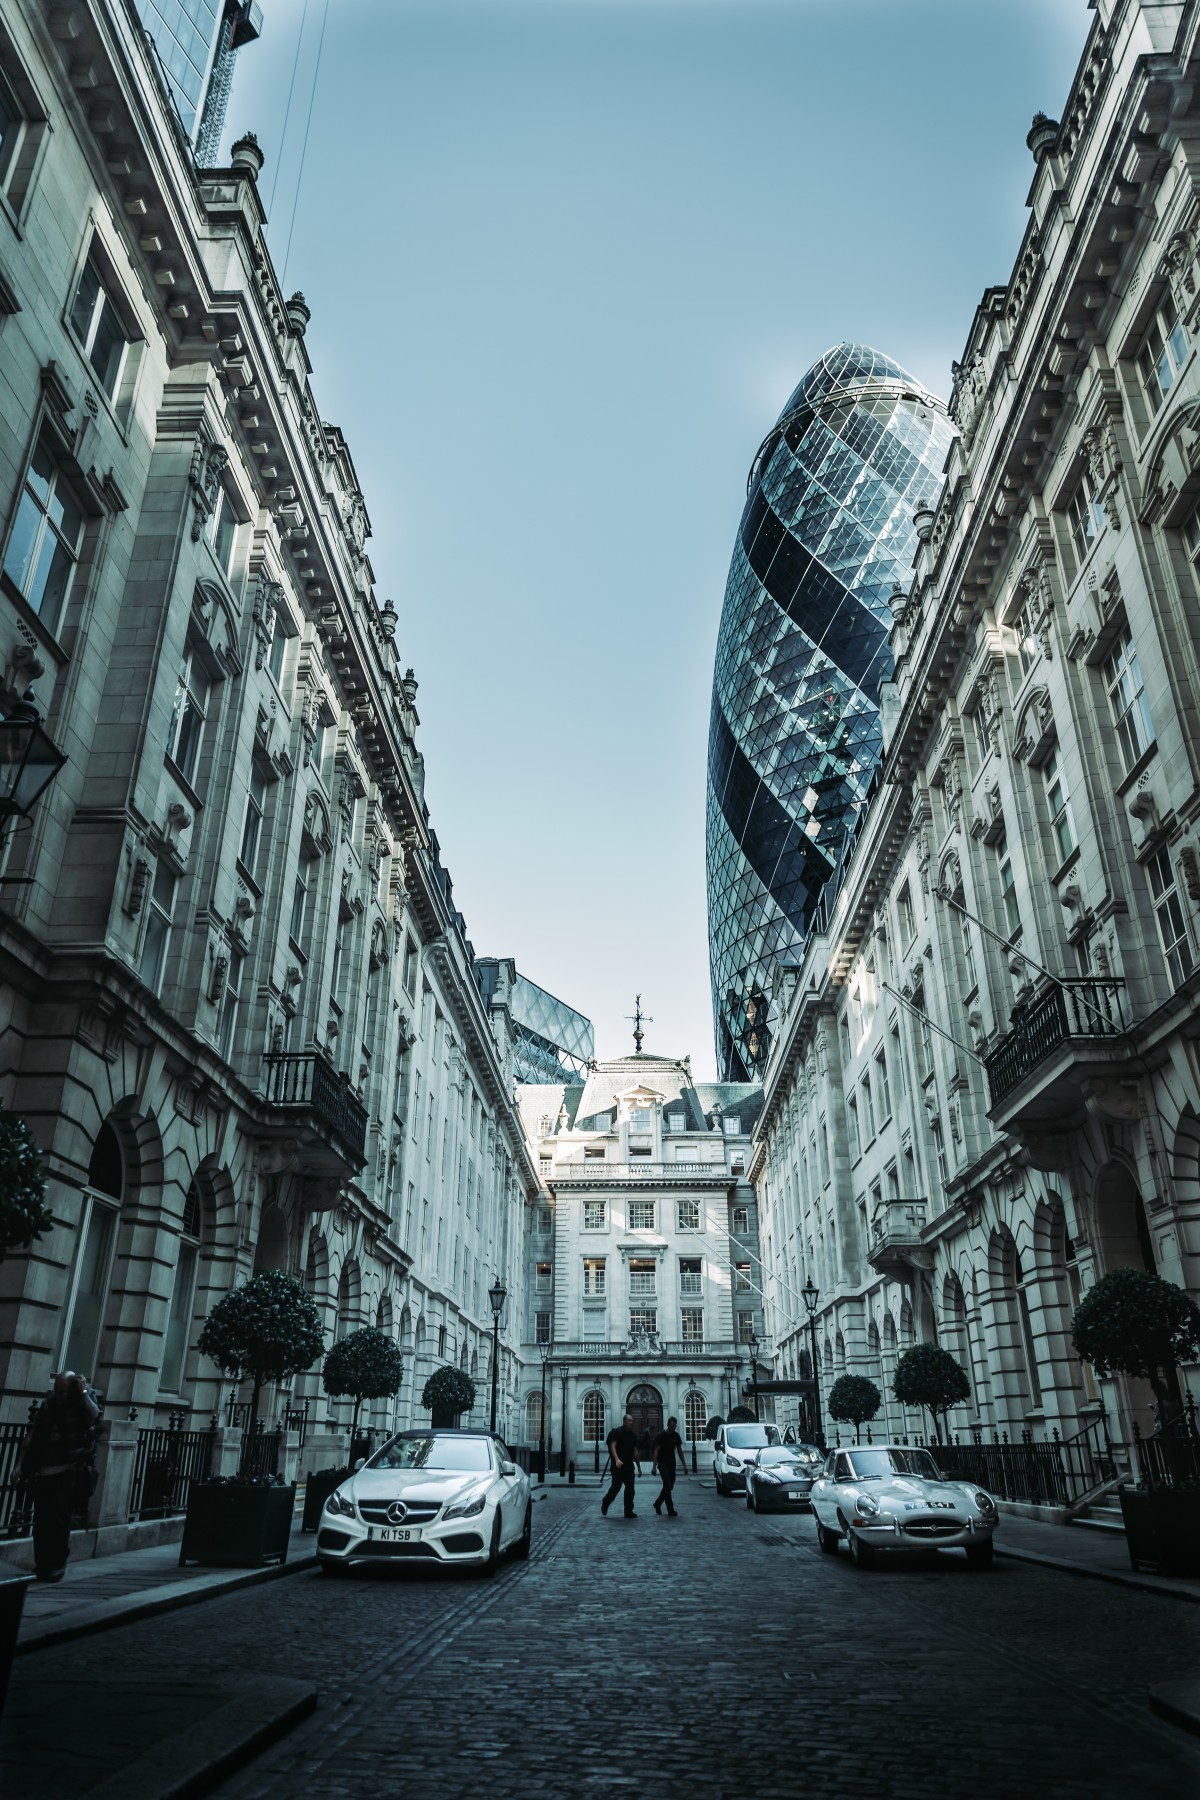 Looking up at the remarkable Gherkin.